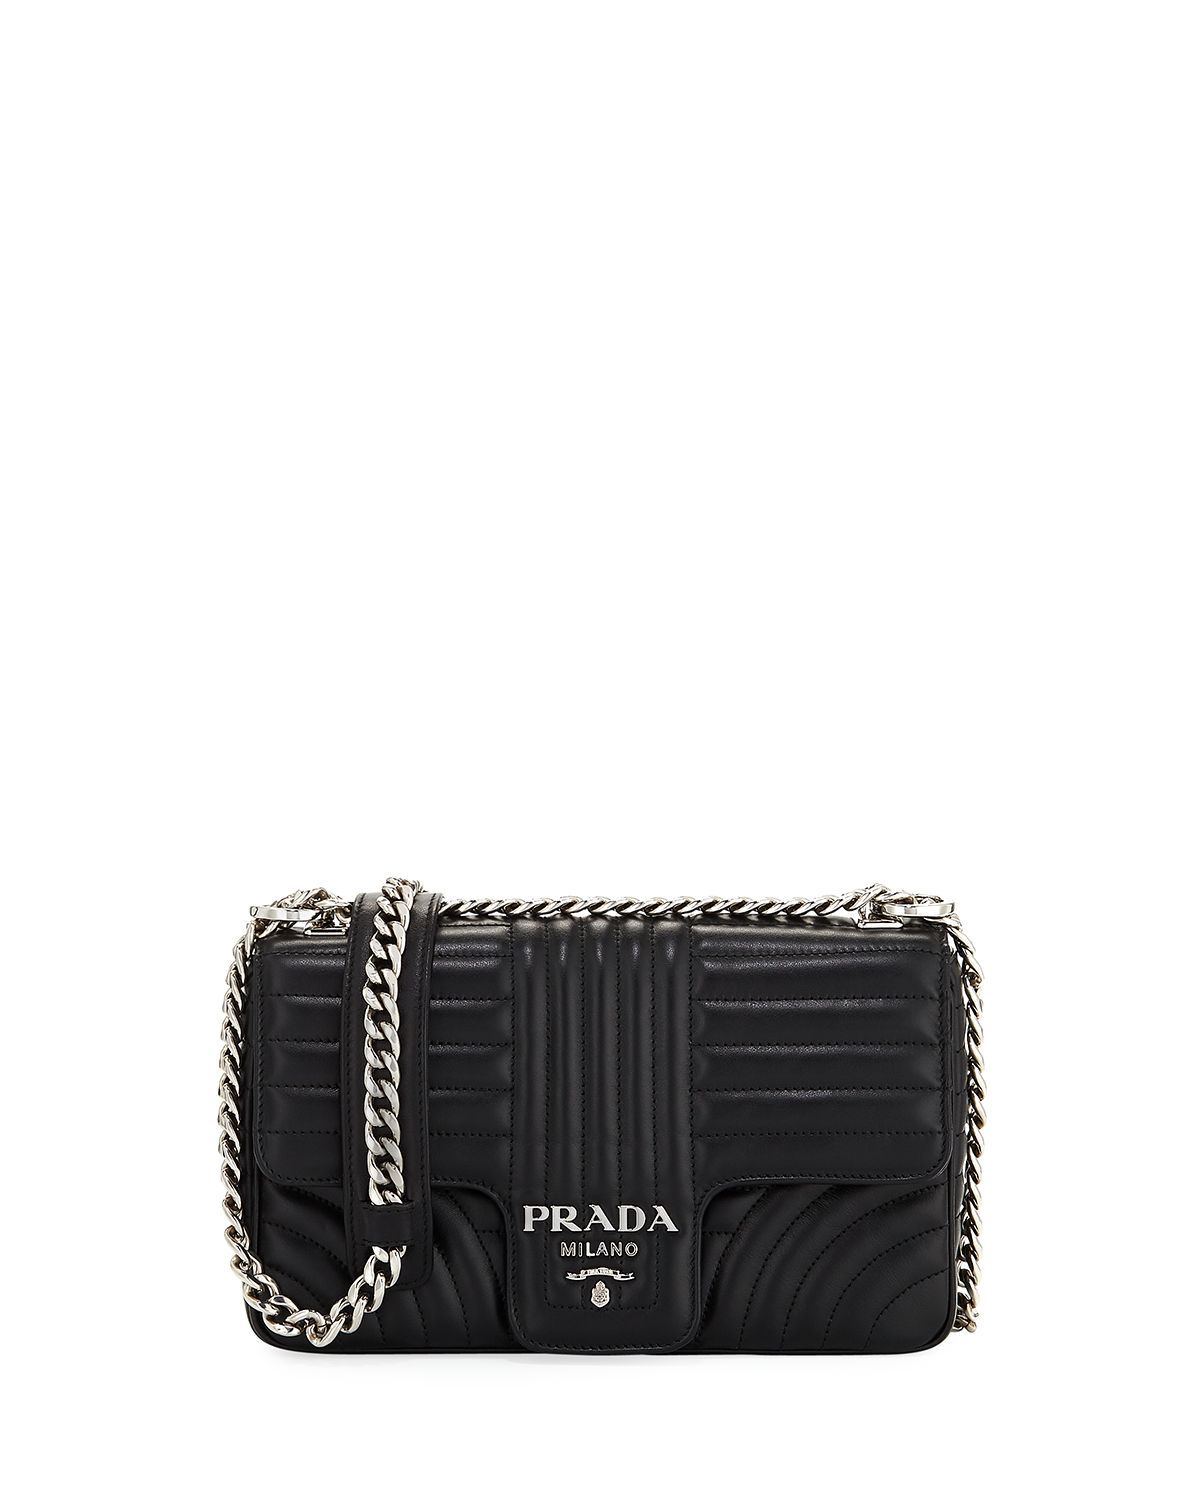 a11b1e9cbac0 Prada Medium Diagramme Shoulder Bag